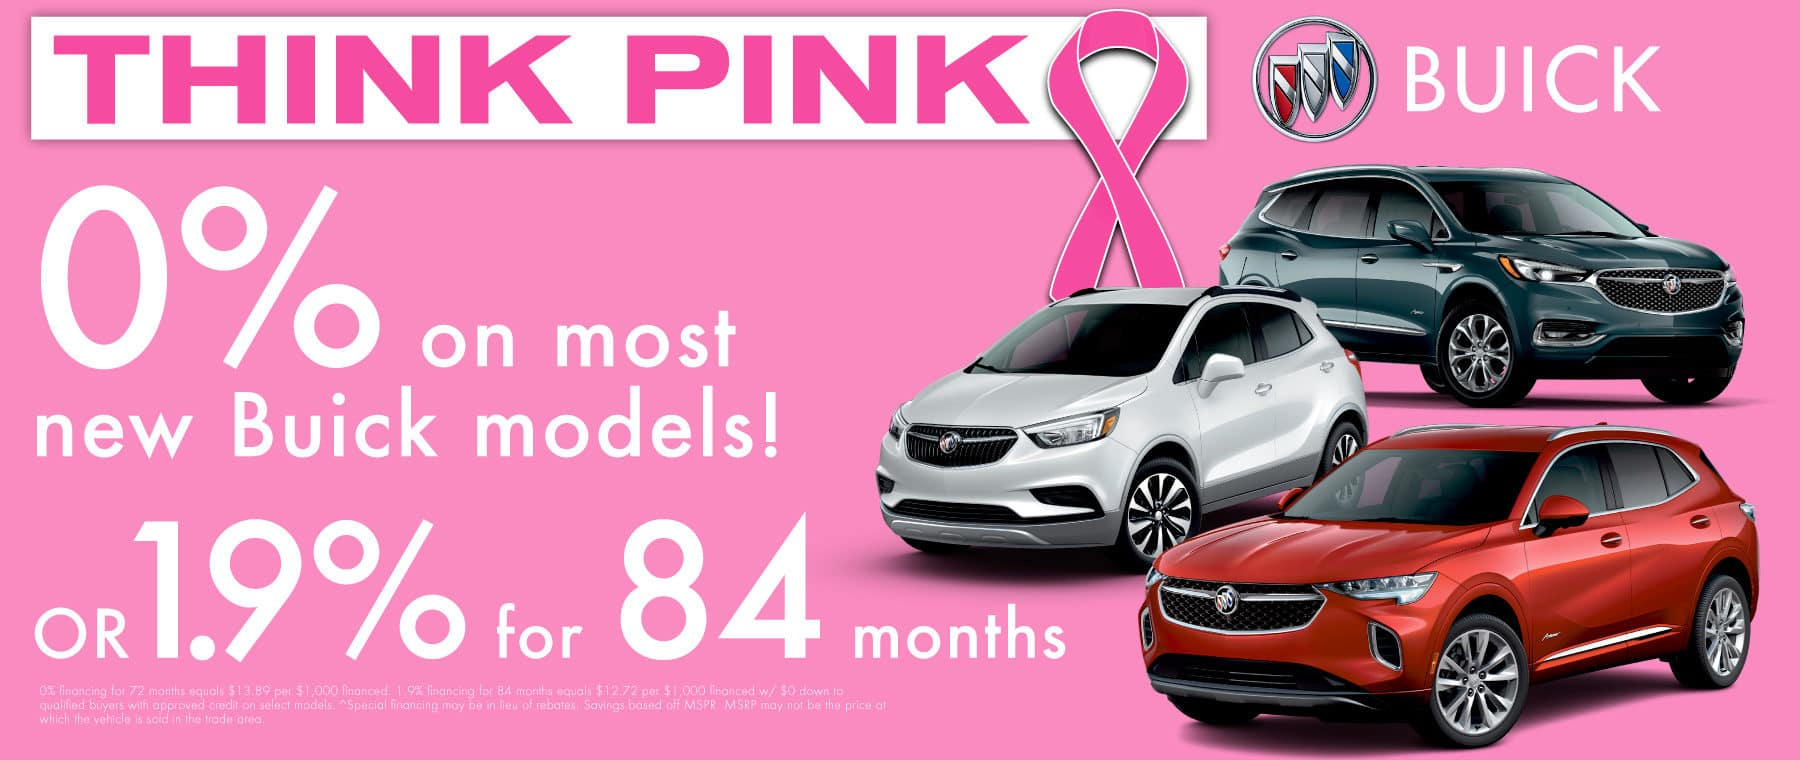 70834-ZCBG_1800x760-ThinkPink_Buick0%